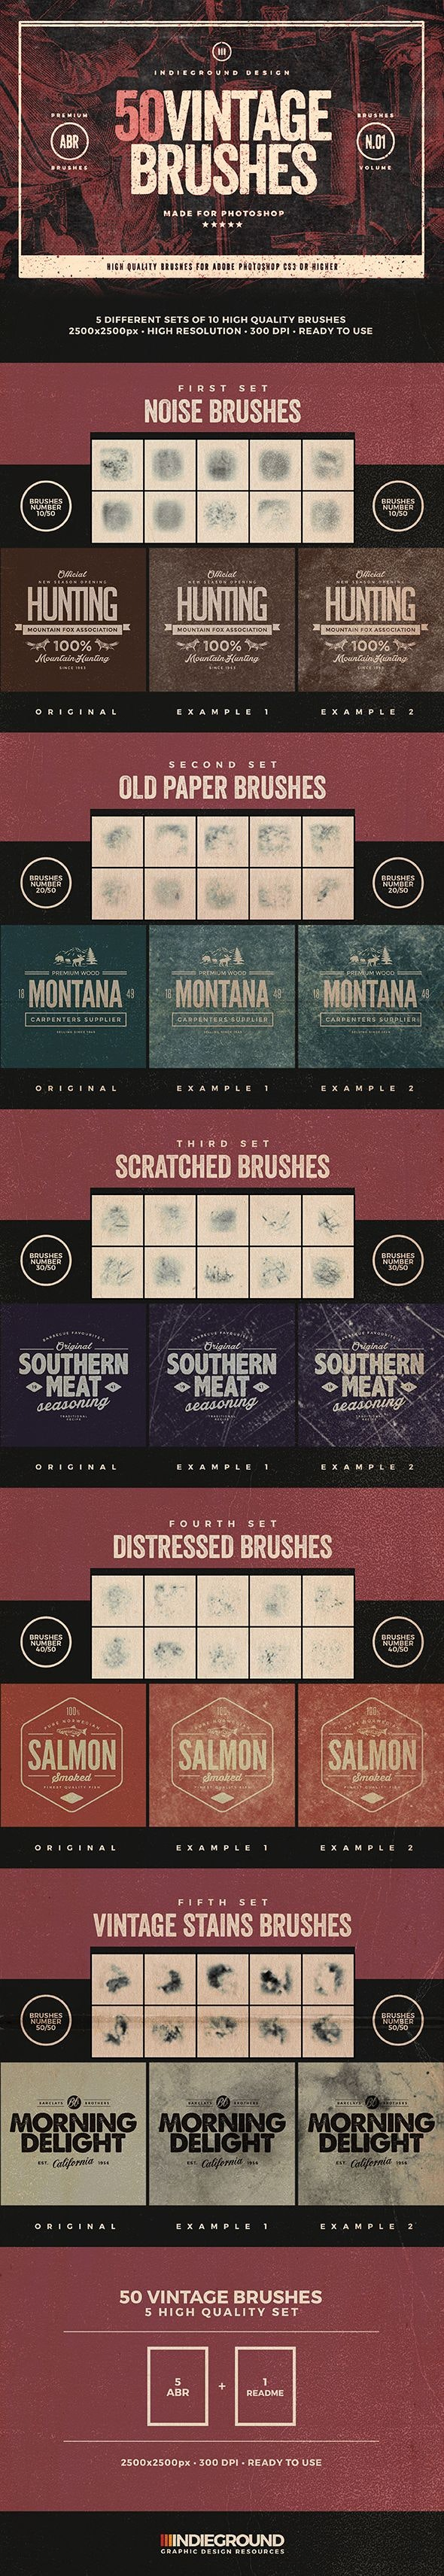 50 Vintage Brushes Set - Brushes Photoshop